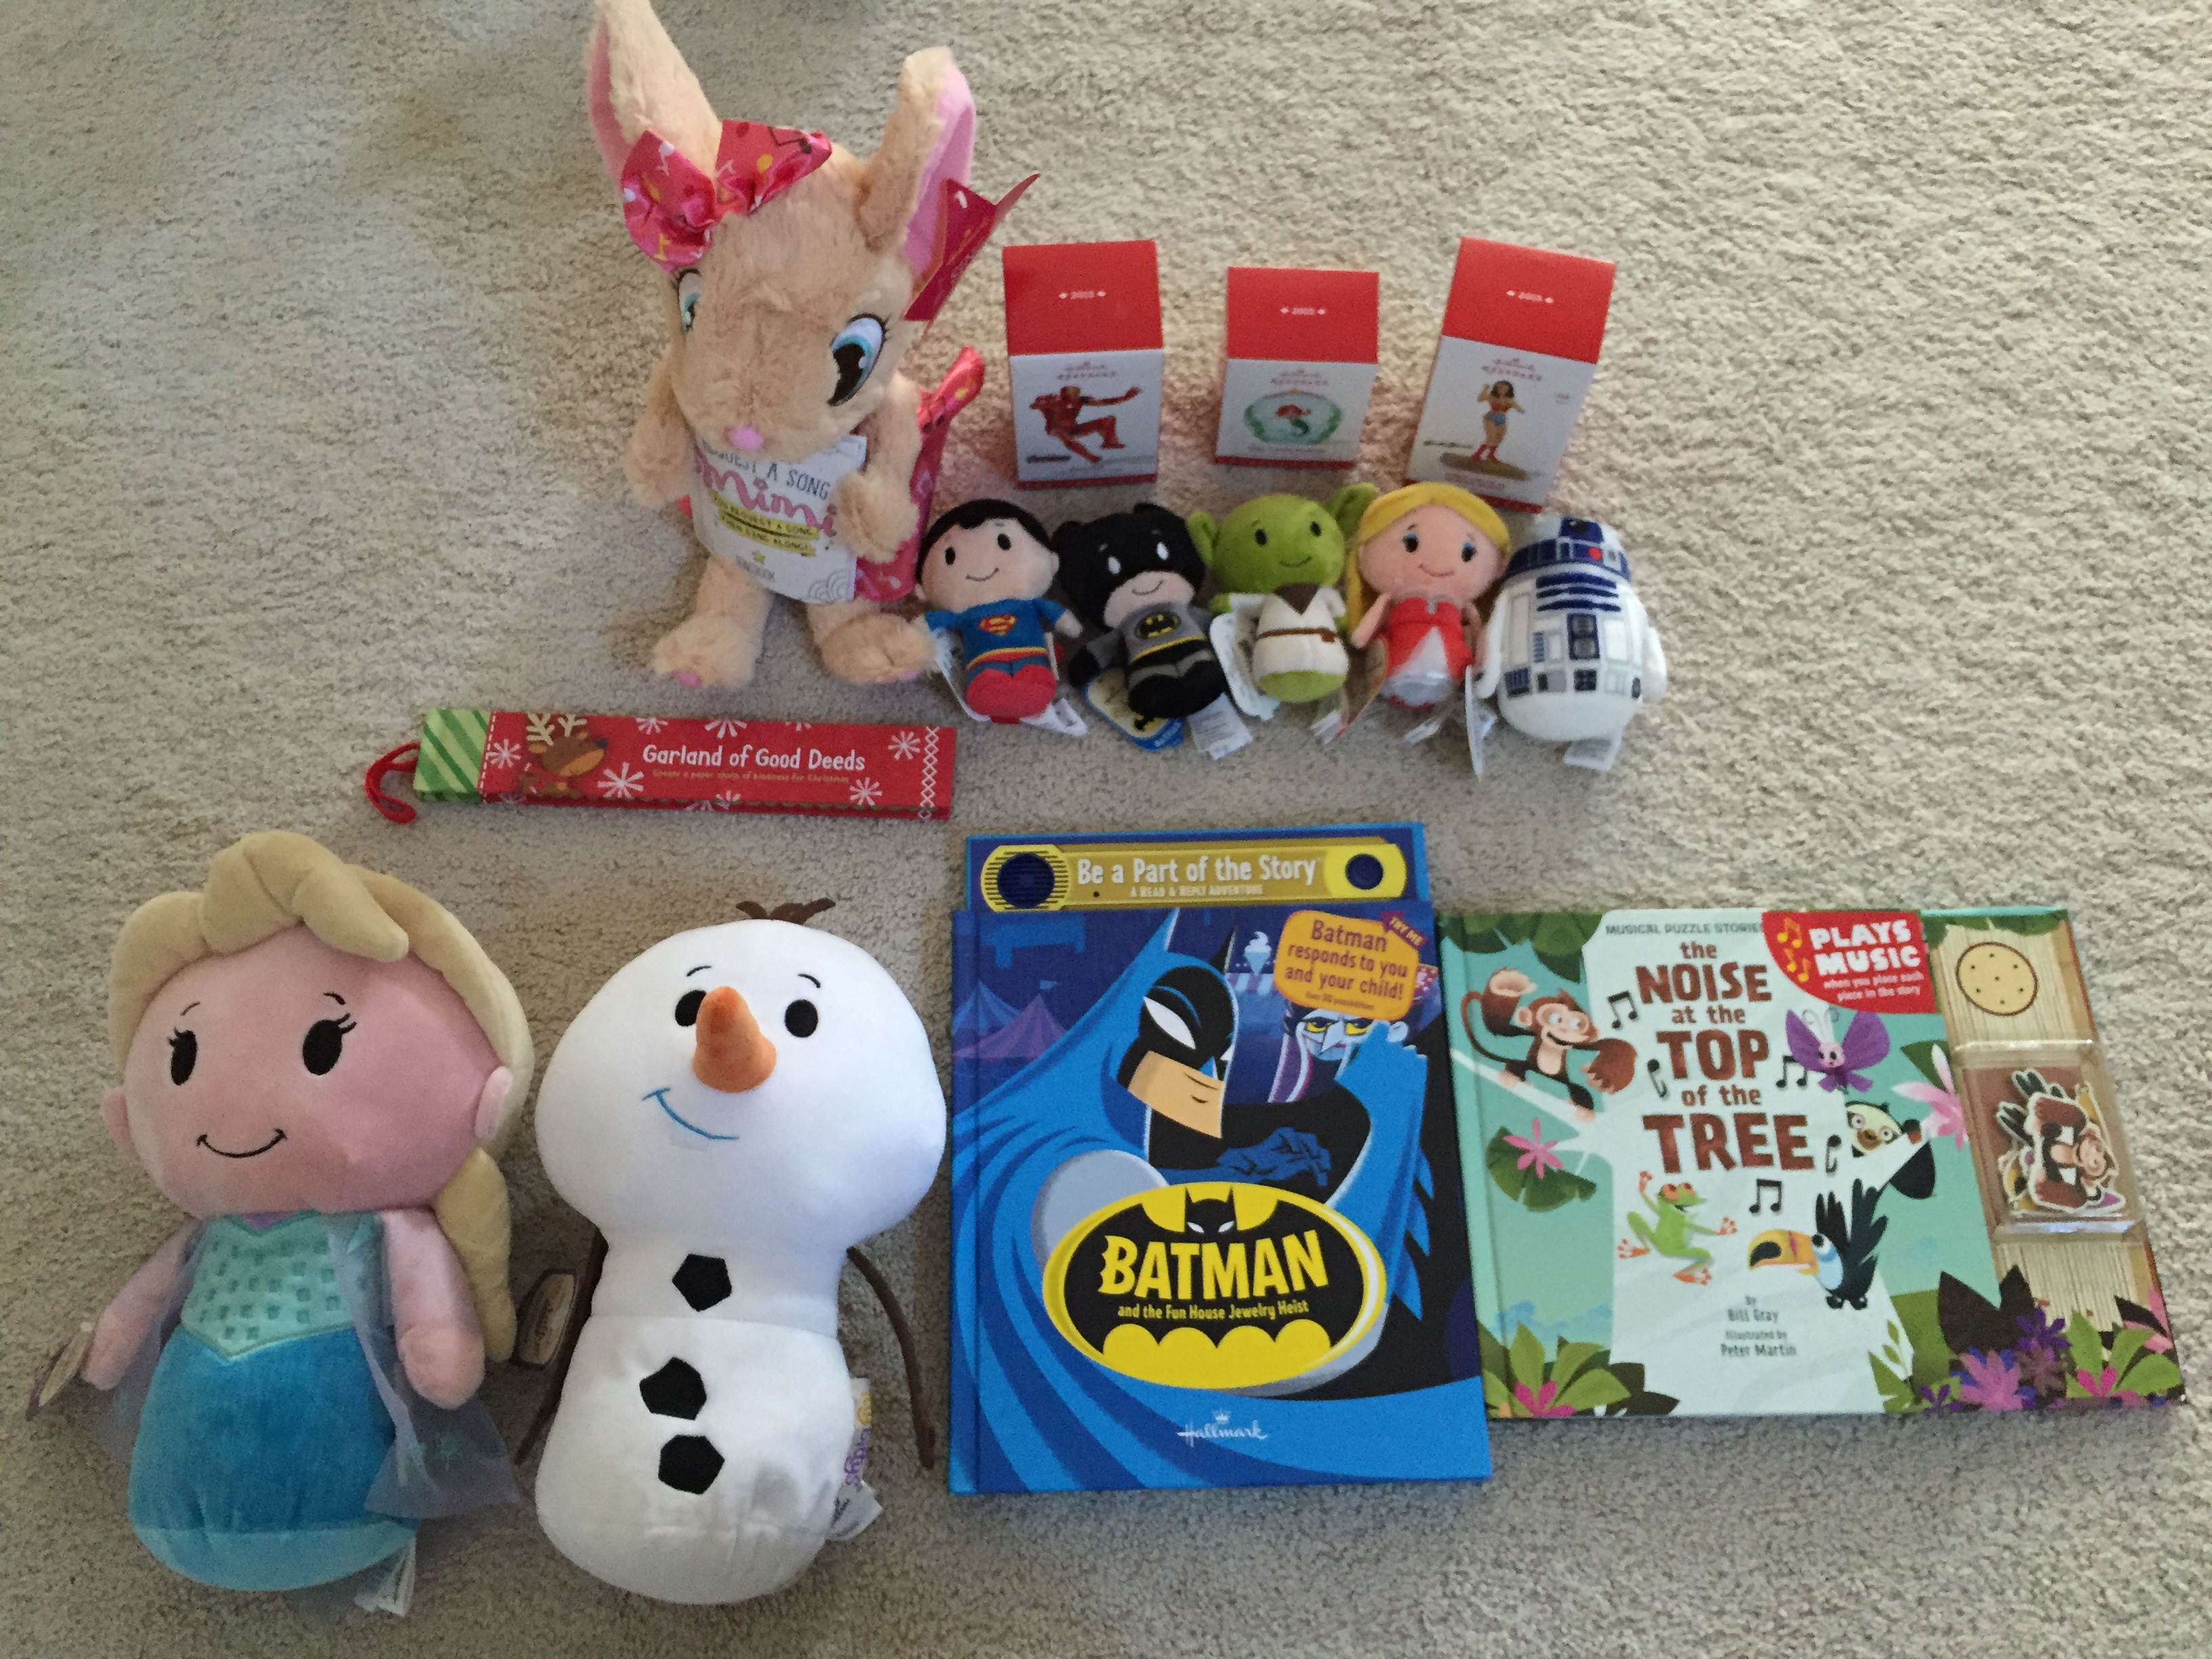 Hallmark Children's Gifts Great For The